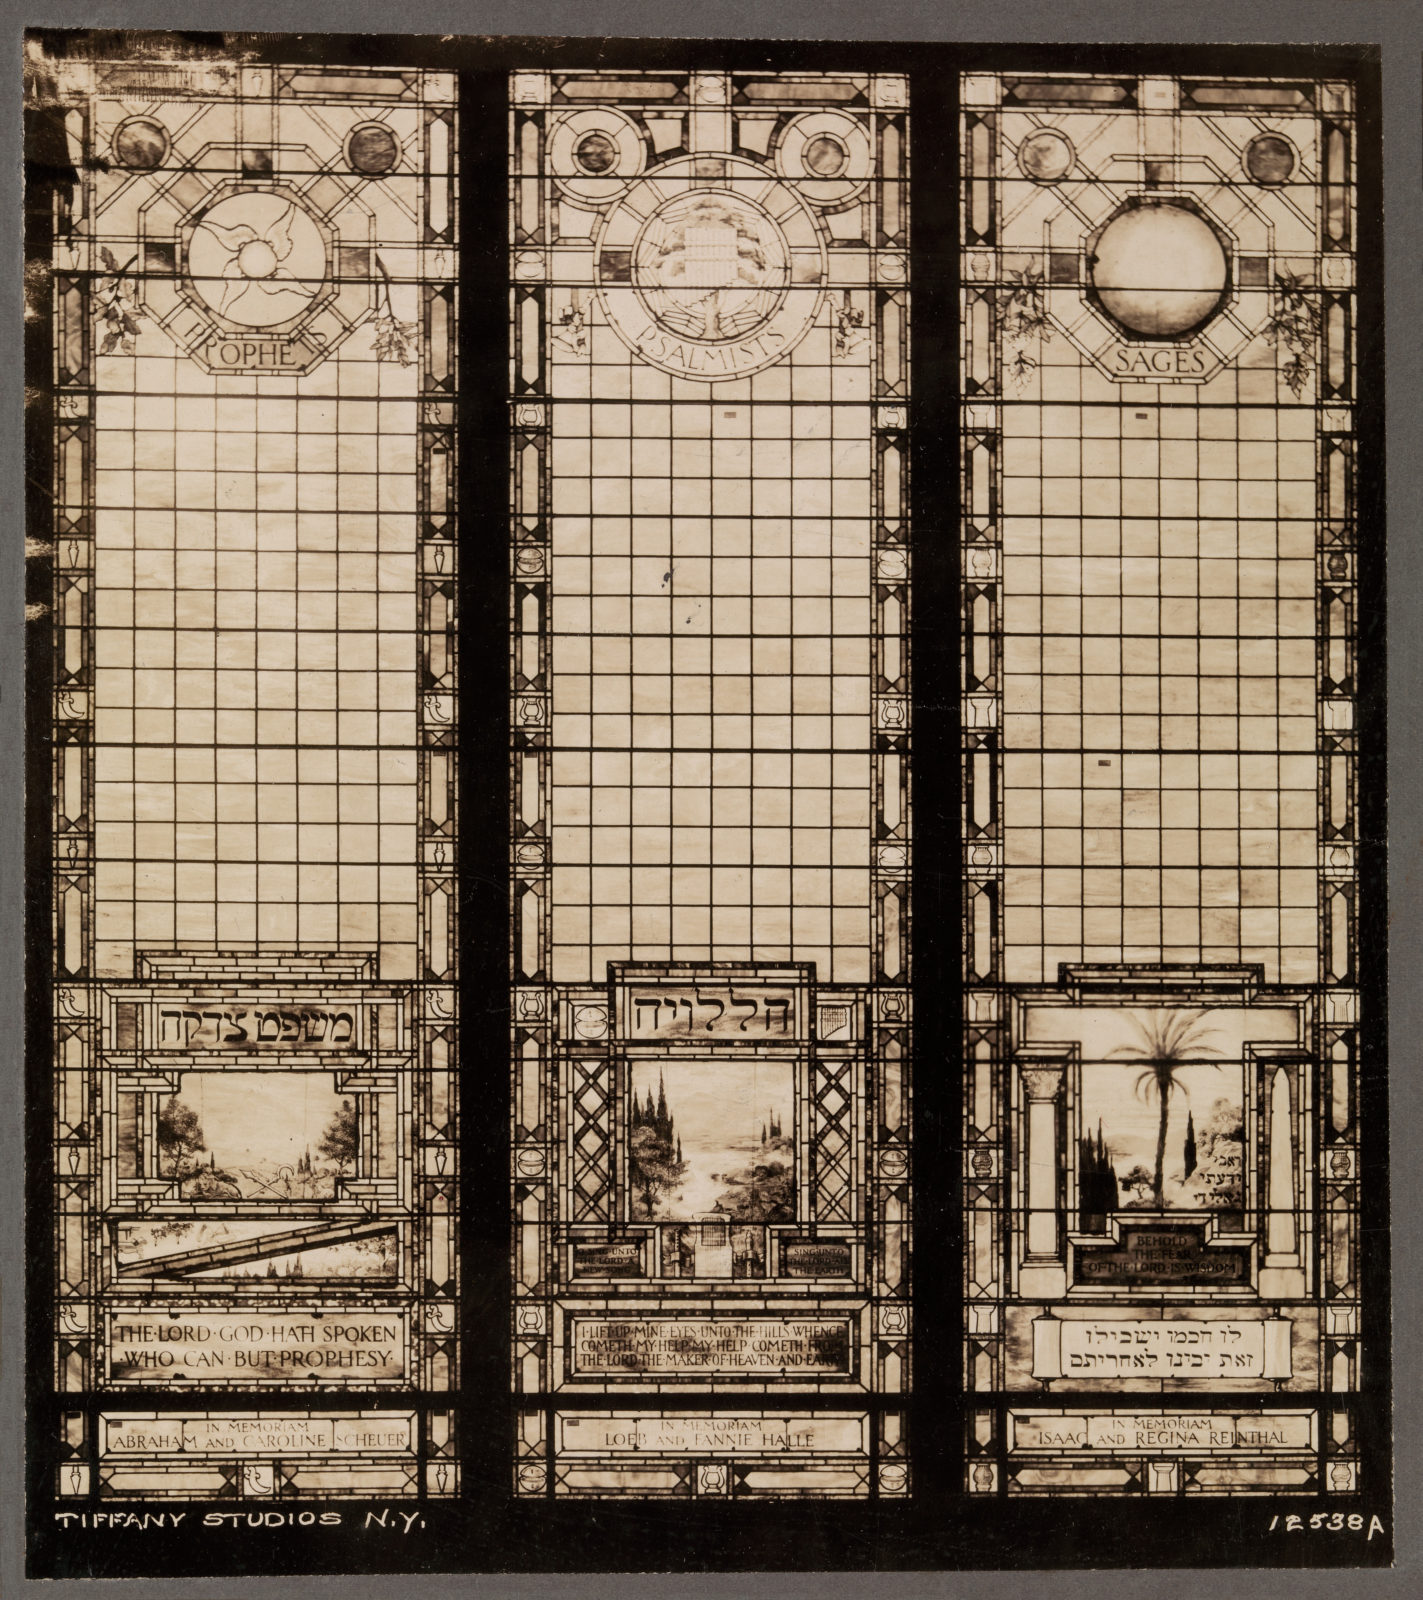 Photograph of a window